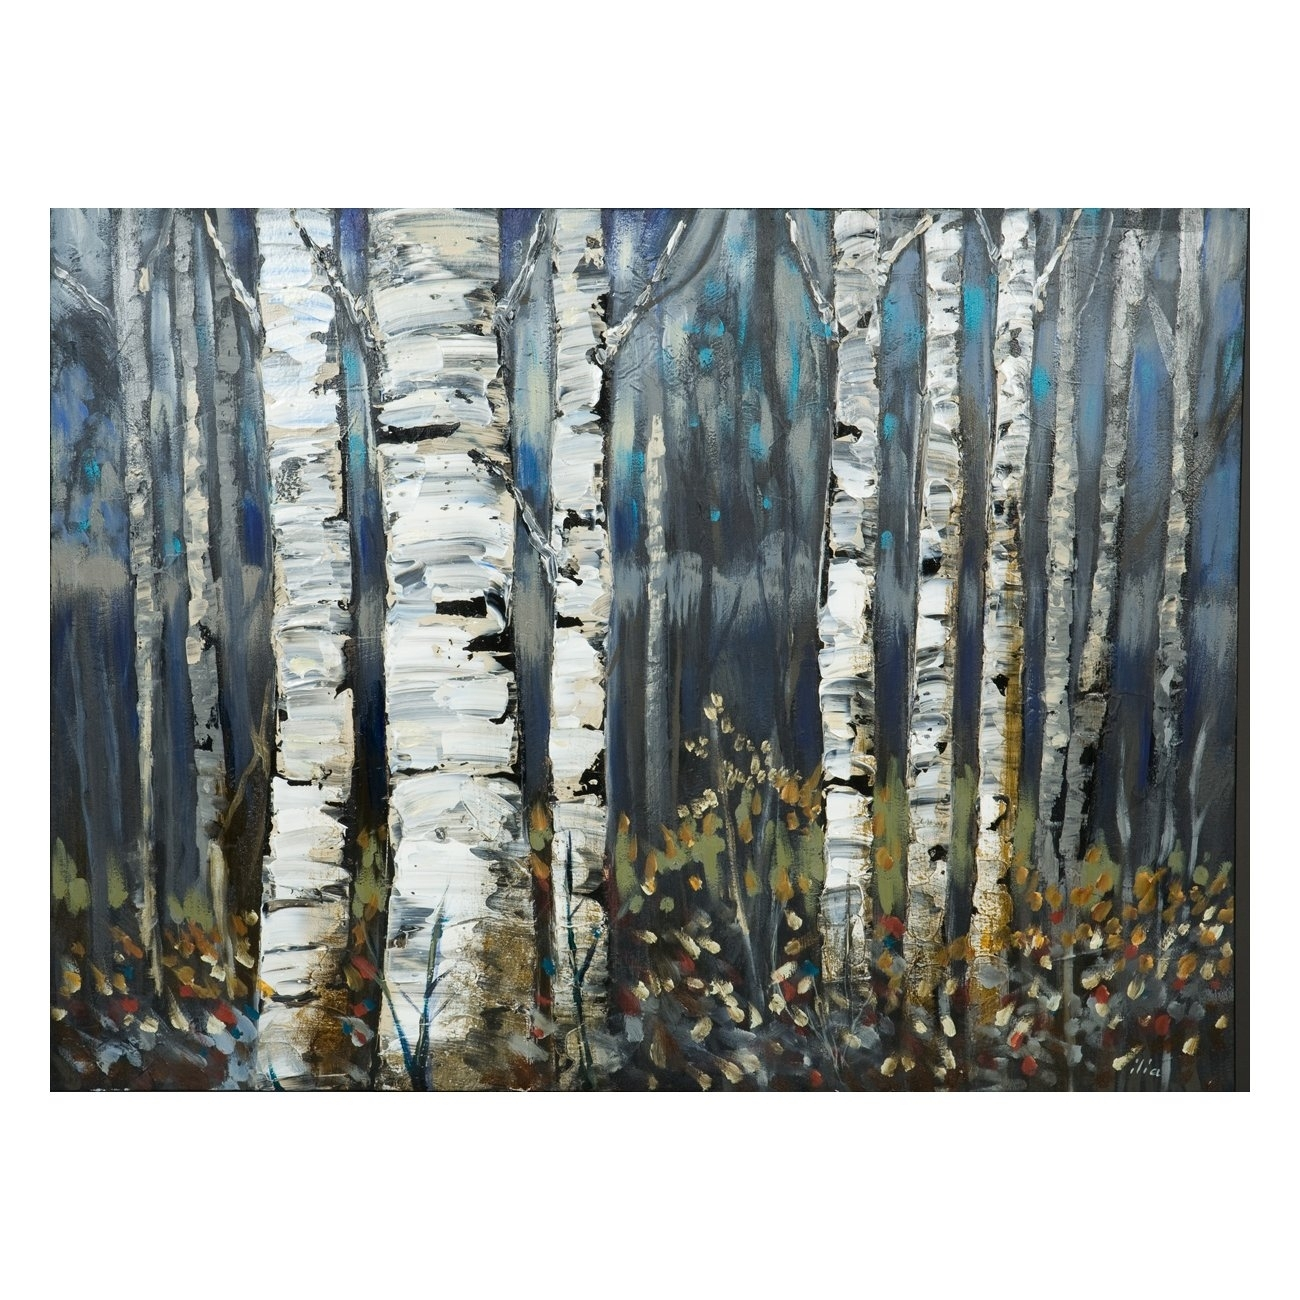 Laila's Ili142 11f Birch Trees Canvas Art | Lowe's Canada Intended For Most Recently Released Birch Trees Canvas Wall Art (View 3 of 15)